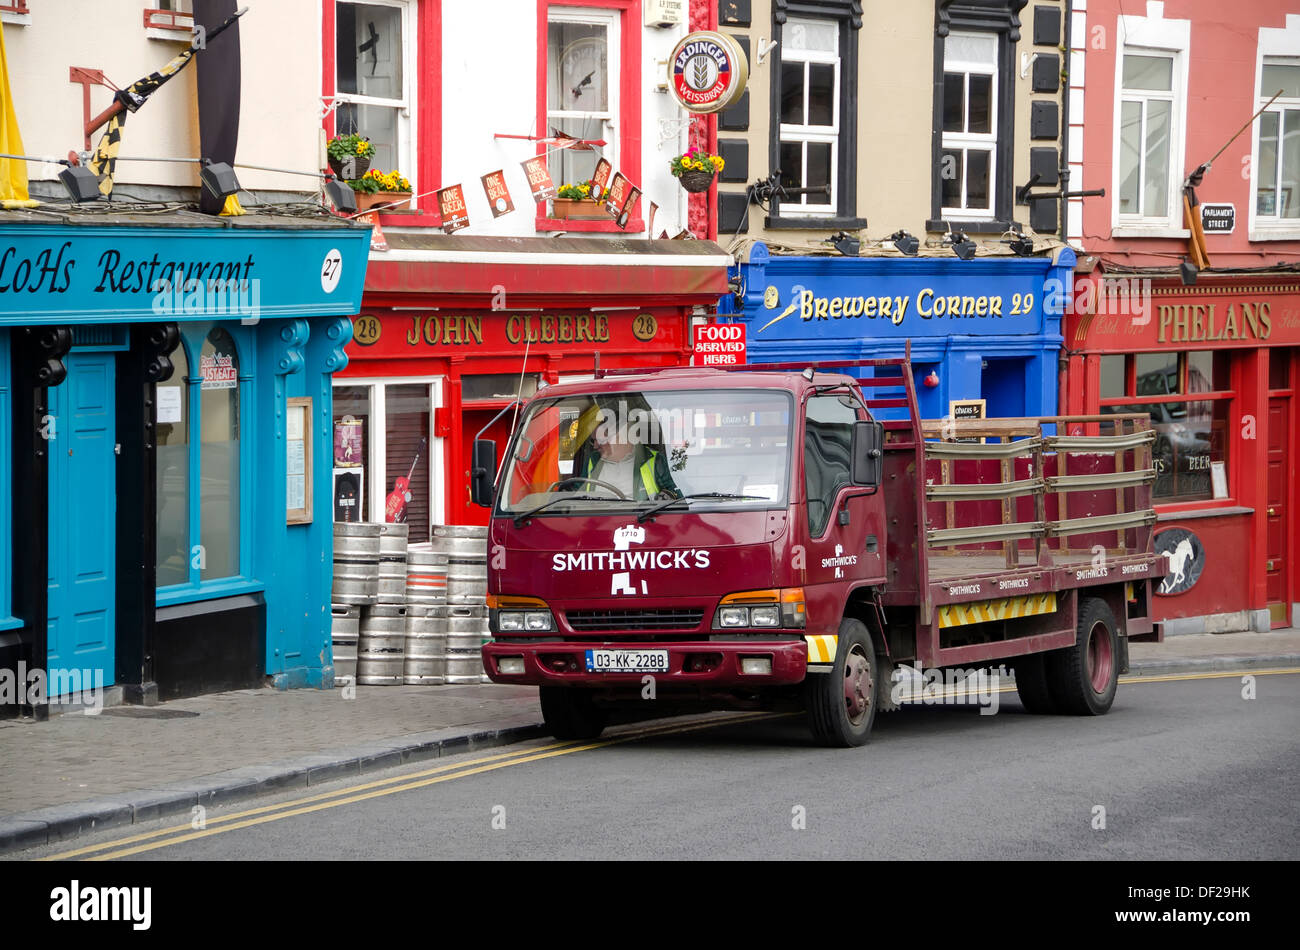 Smithwick's delivery truck in front of pubs in Kilkenny, home of Smithwick's brewery, Ireland. - Stock Image